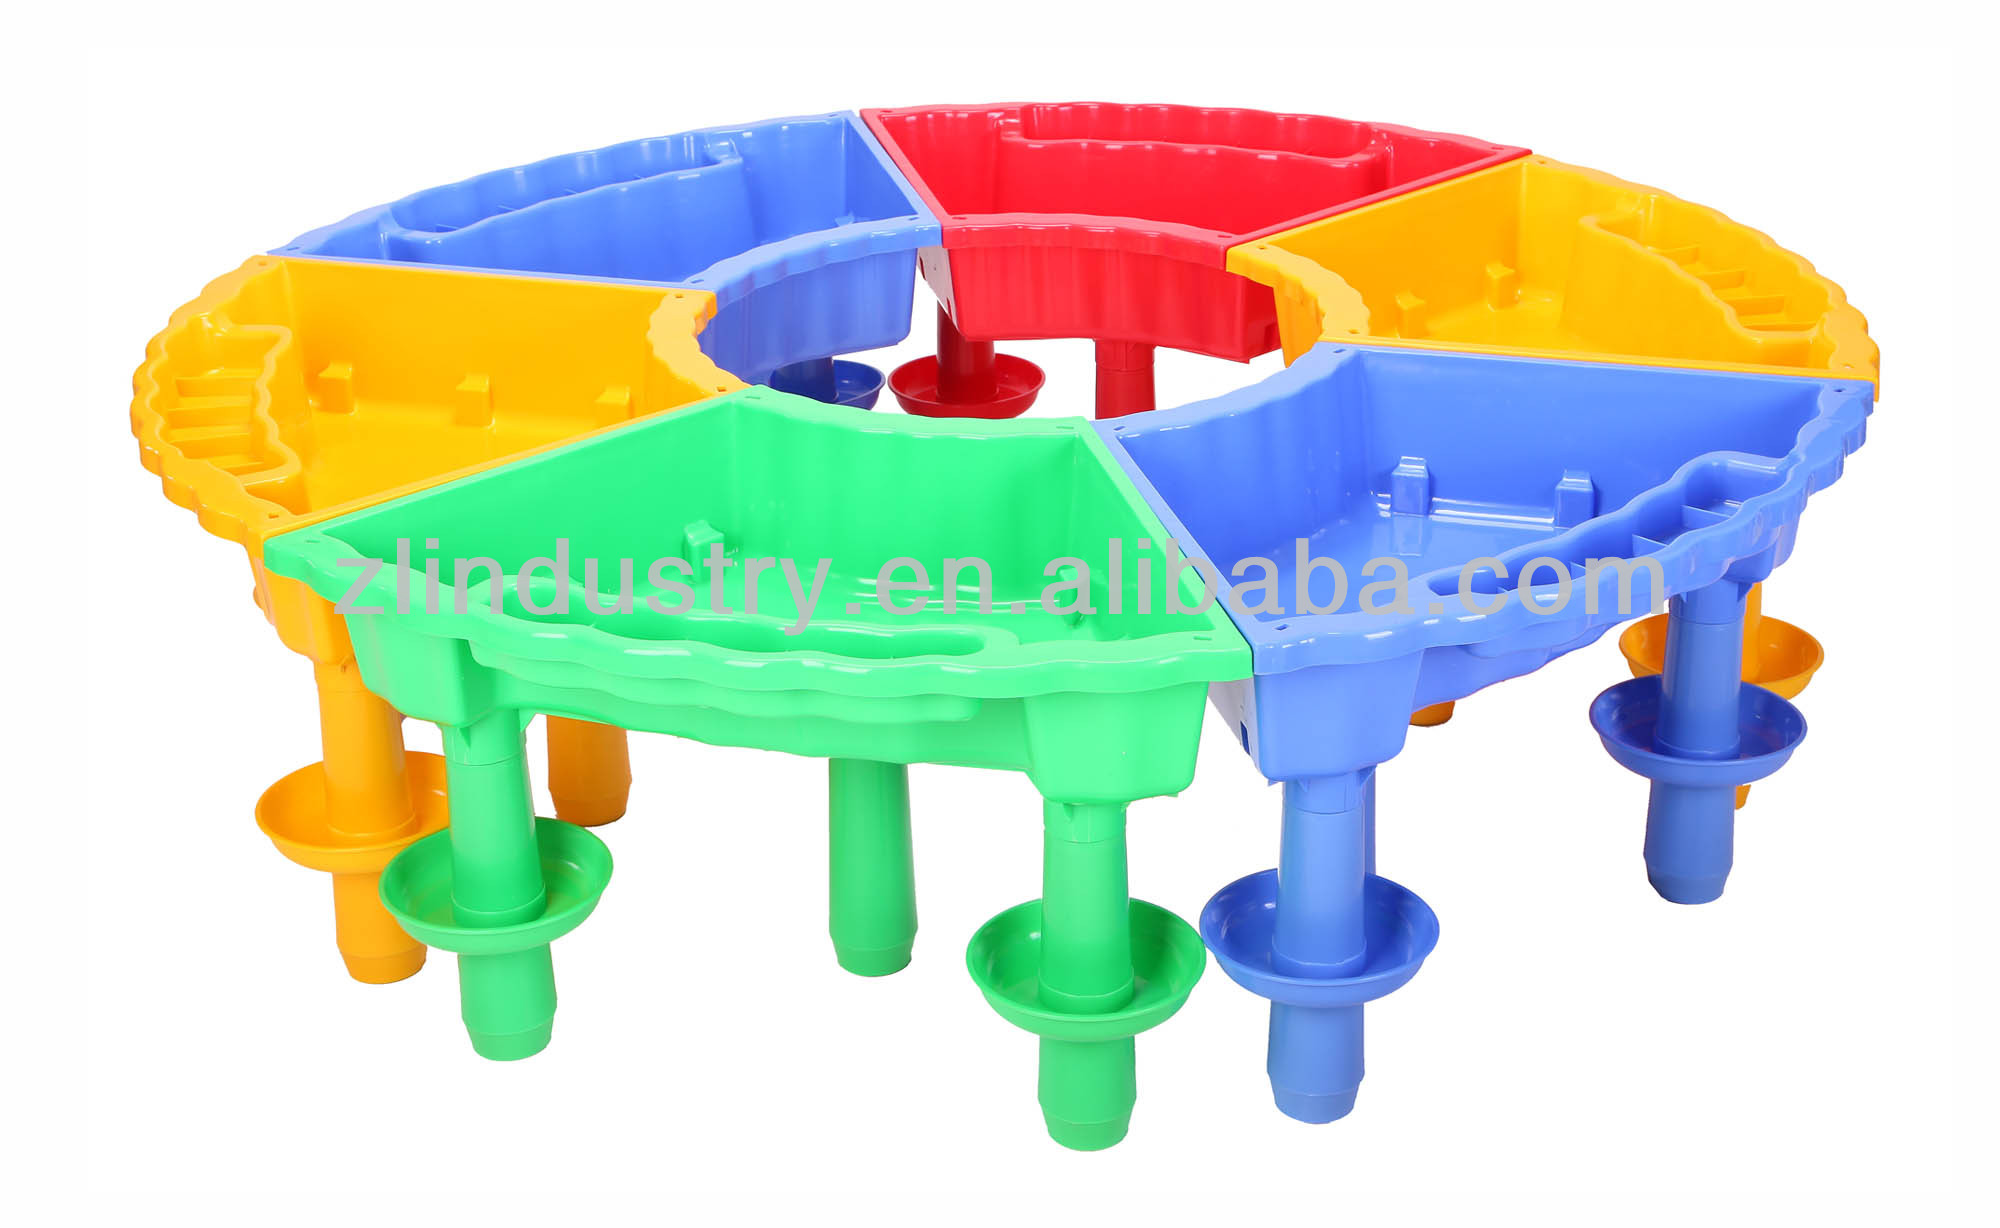 Kids Toy Sand Tray Play Water Table Buy Kids Toy Sand Tray Play